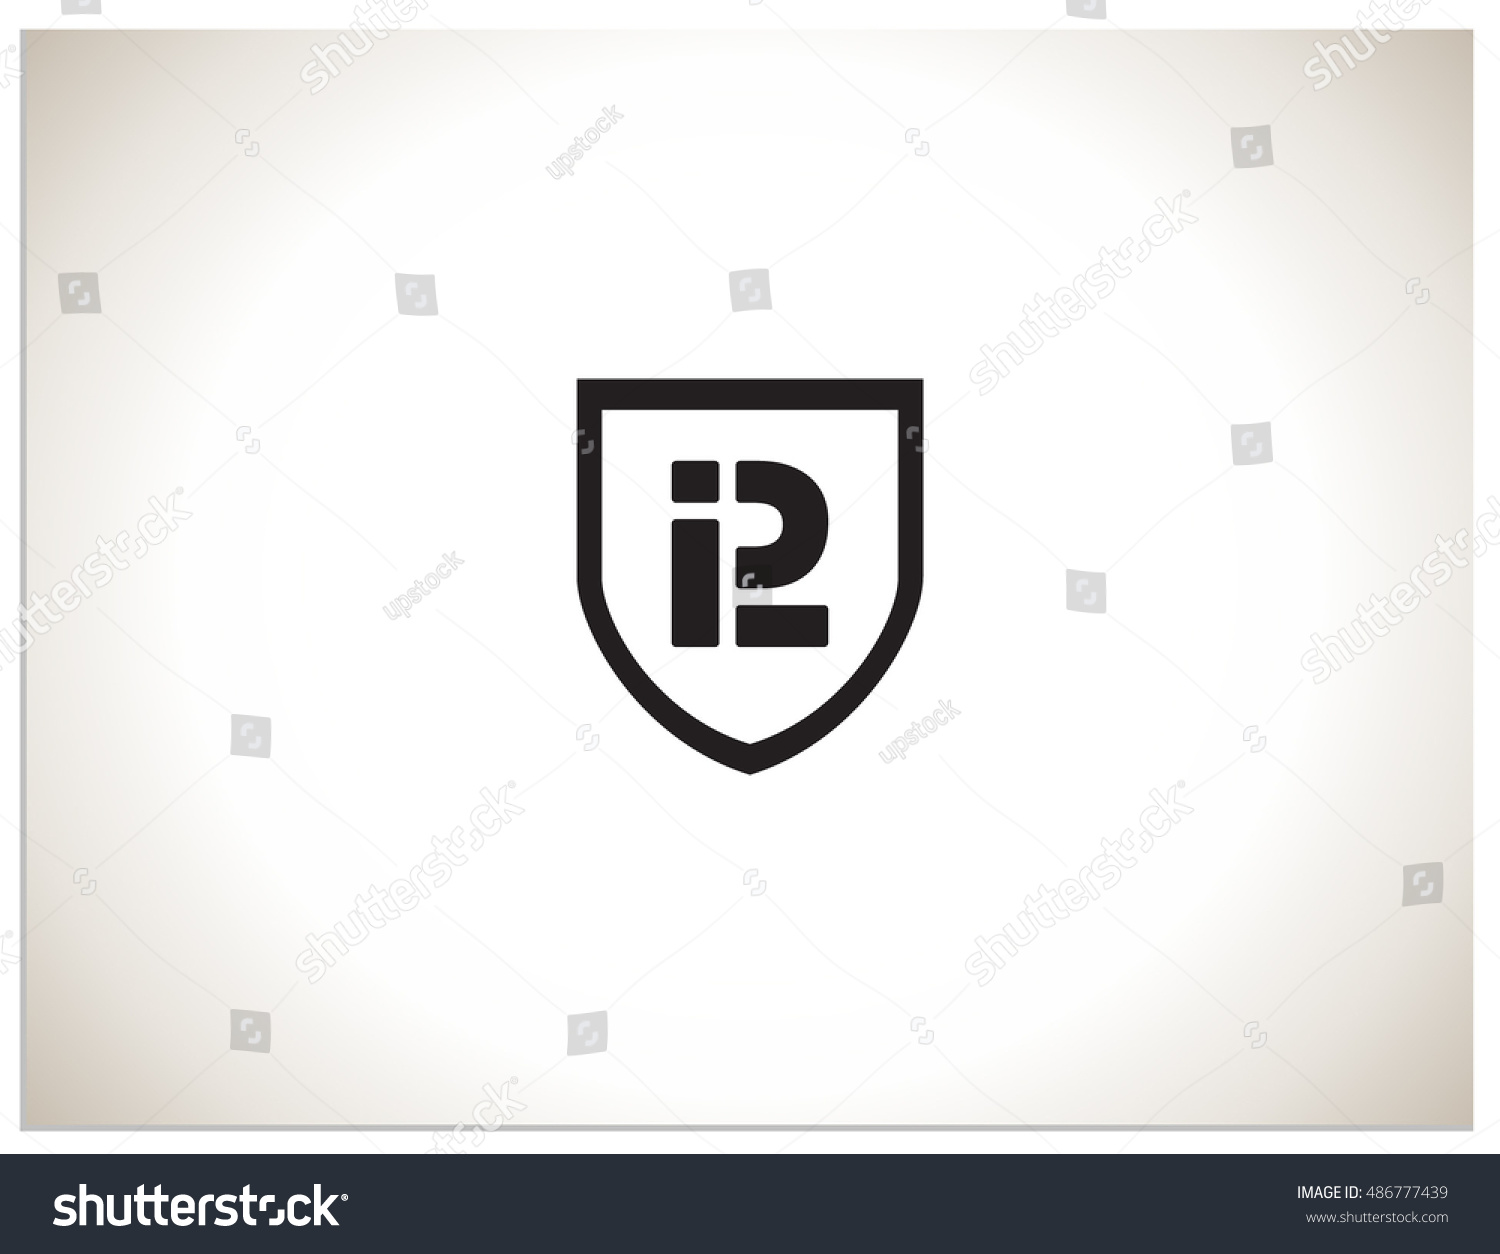 Text logo which consists connected abbreviations stock vector text logo which consists of connected abbreviations p and l in shield isolated sign symbol buycottarizona Gallery